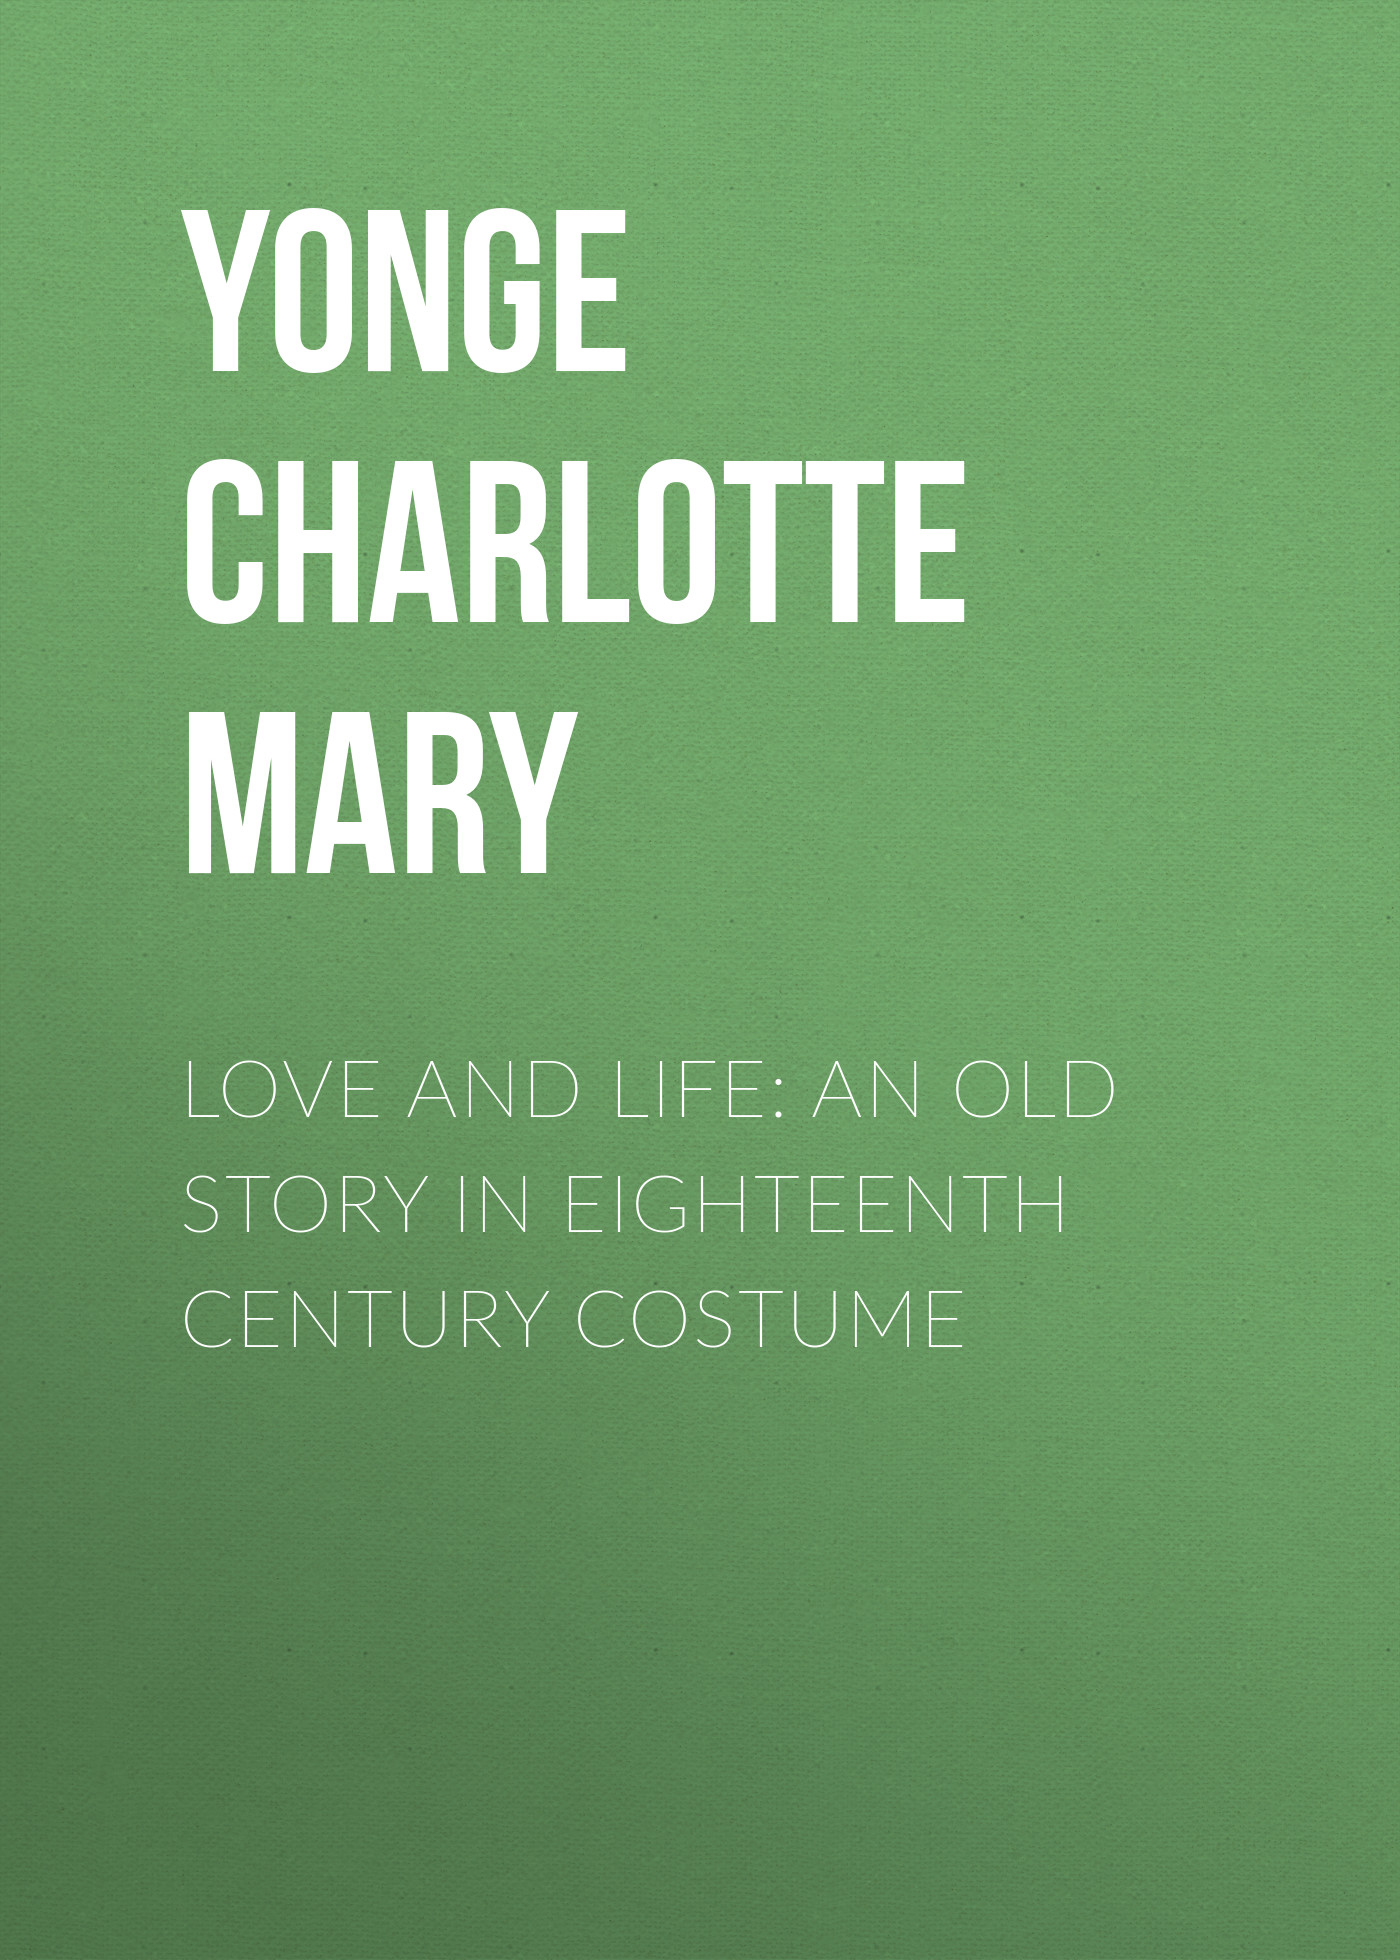 Yonge Charlotte Mary Love and Life: An Old Story in Eighteenth Century Costume стульчик для кормления nuovita beata riserva заповедник